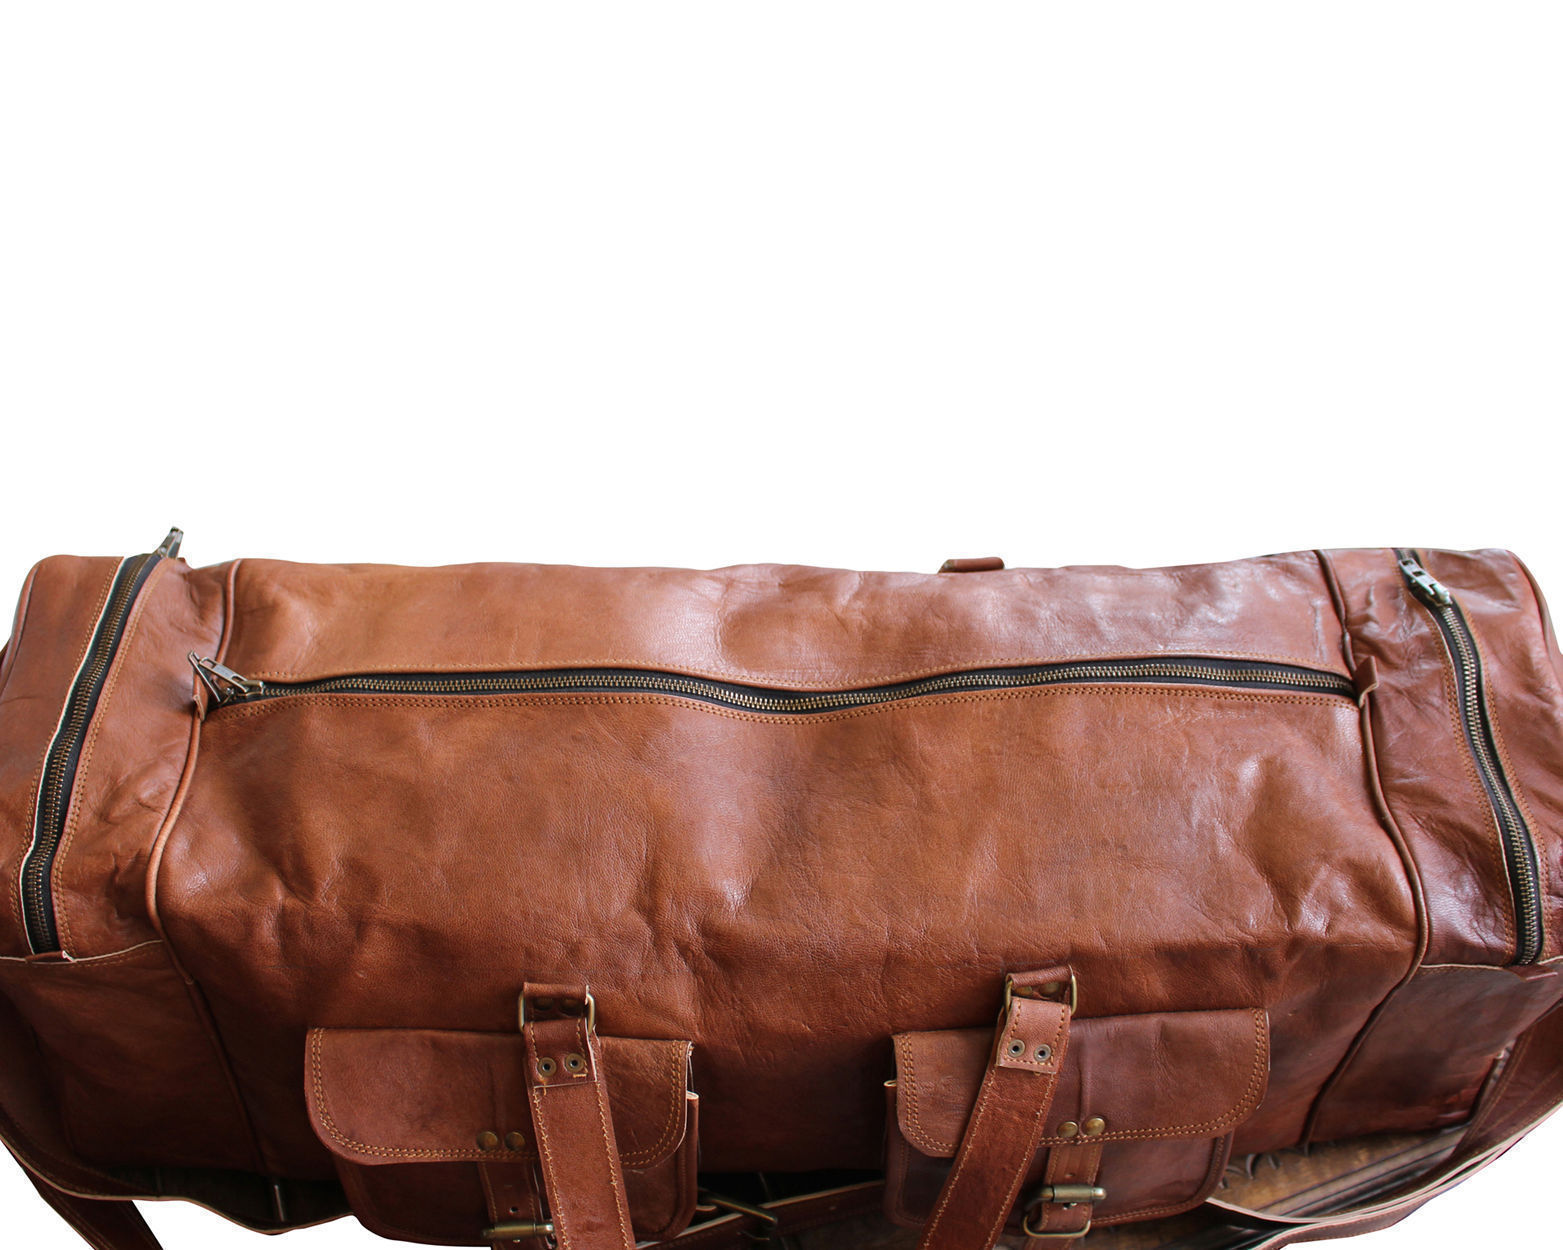 bf5b57869247 S l1600. S l1600. Previous. New Soft Vintage Leather Travel Duffel Weekend  Men Luggage Gym Overnight Bag